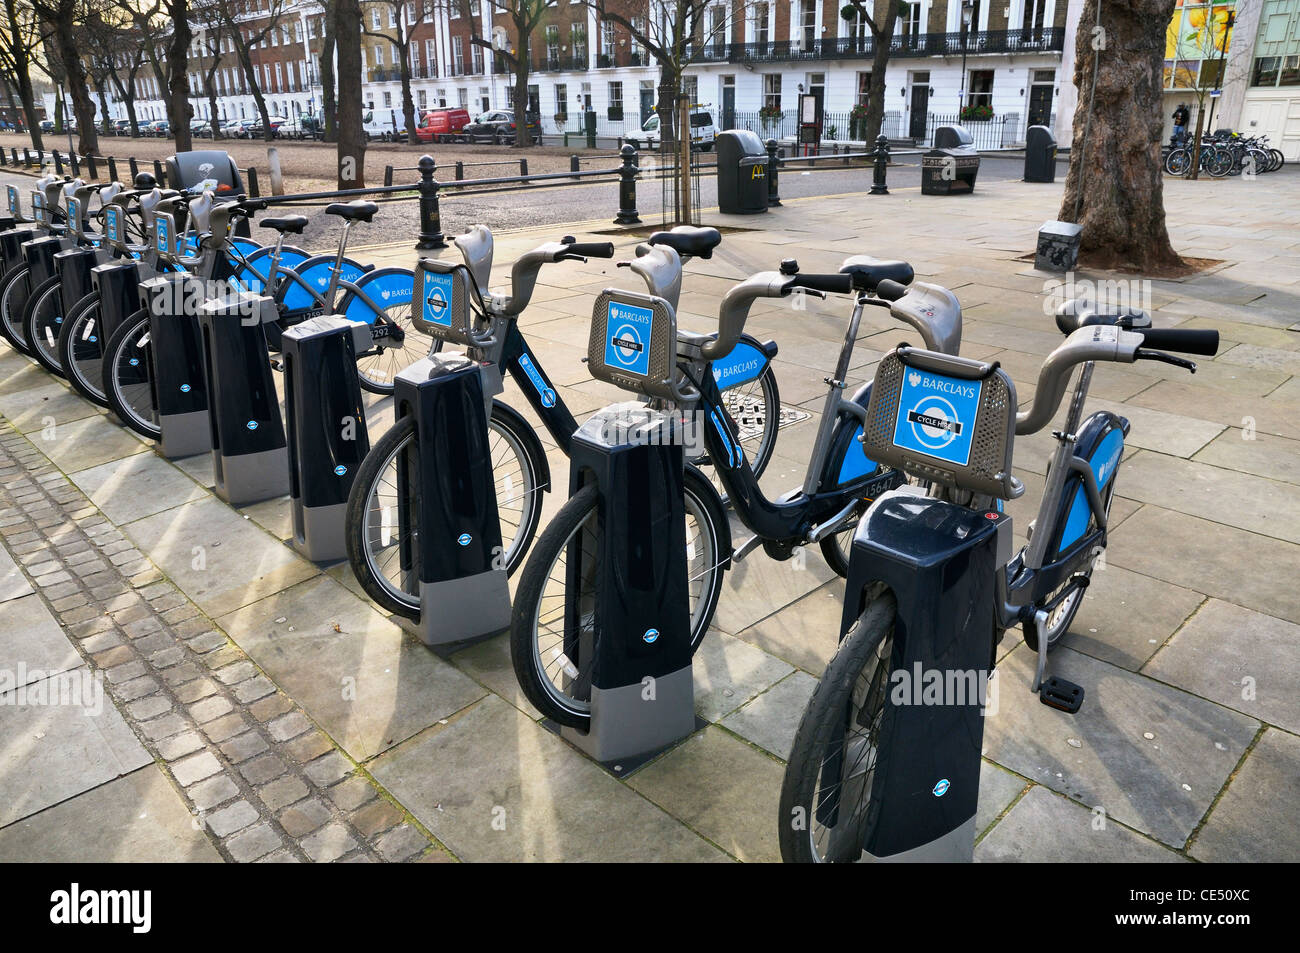 Barclays Cycle Hire scheme (aka 'Boris bikes') on the King's Road, Chelsea, London, SW3, UK - Stock Image